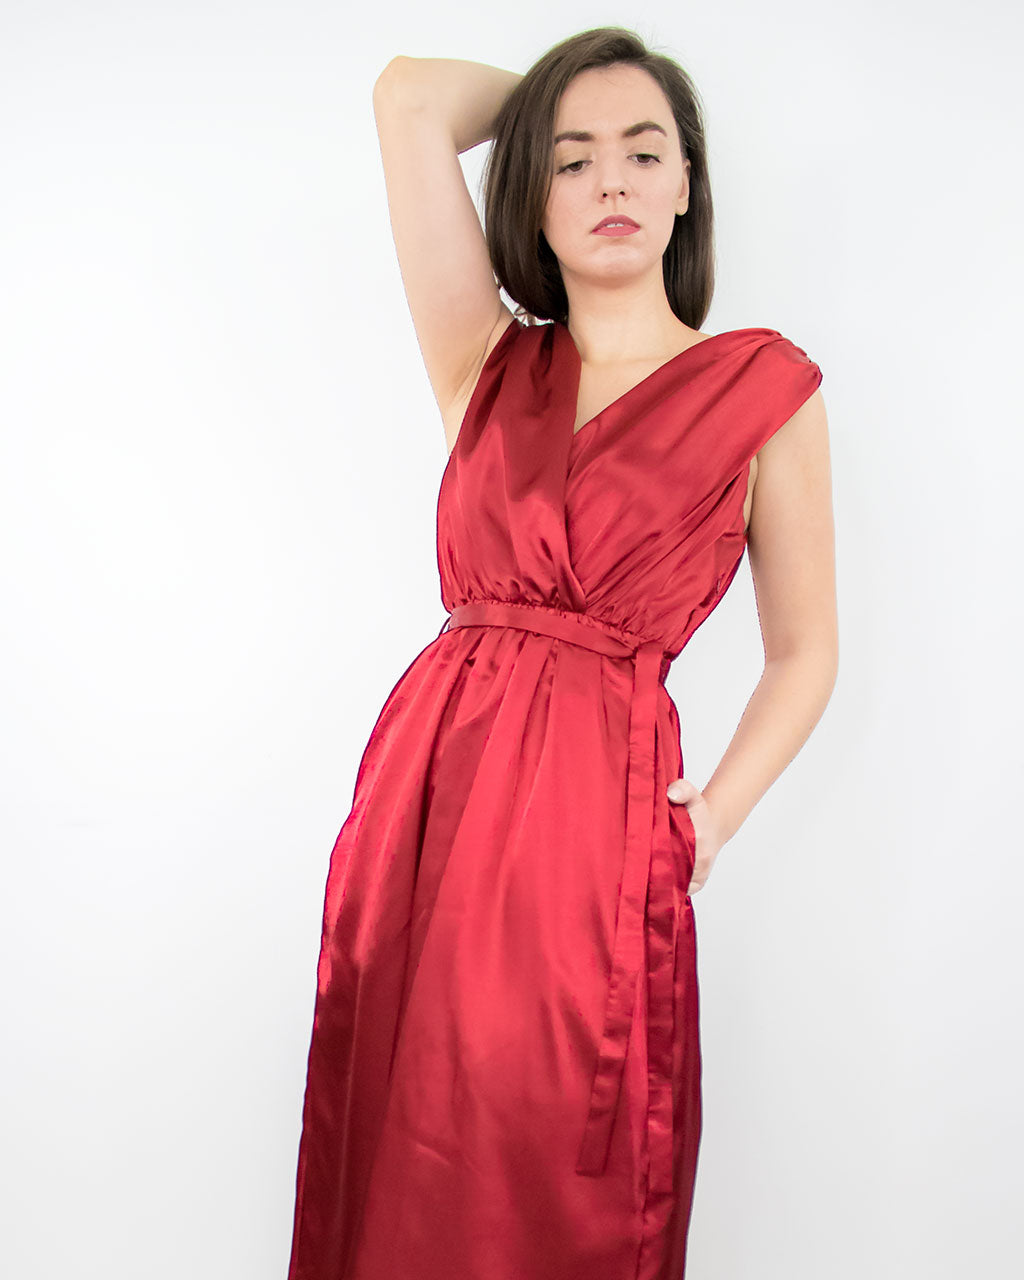 Rust red burgundy midi occassion dress for prom wedding guest cocktail party with pockets made from recycled PET satin ADKN